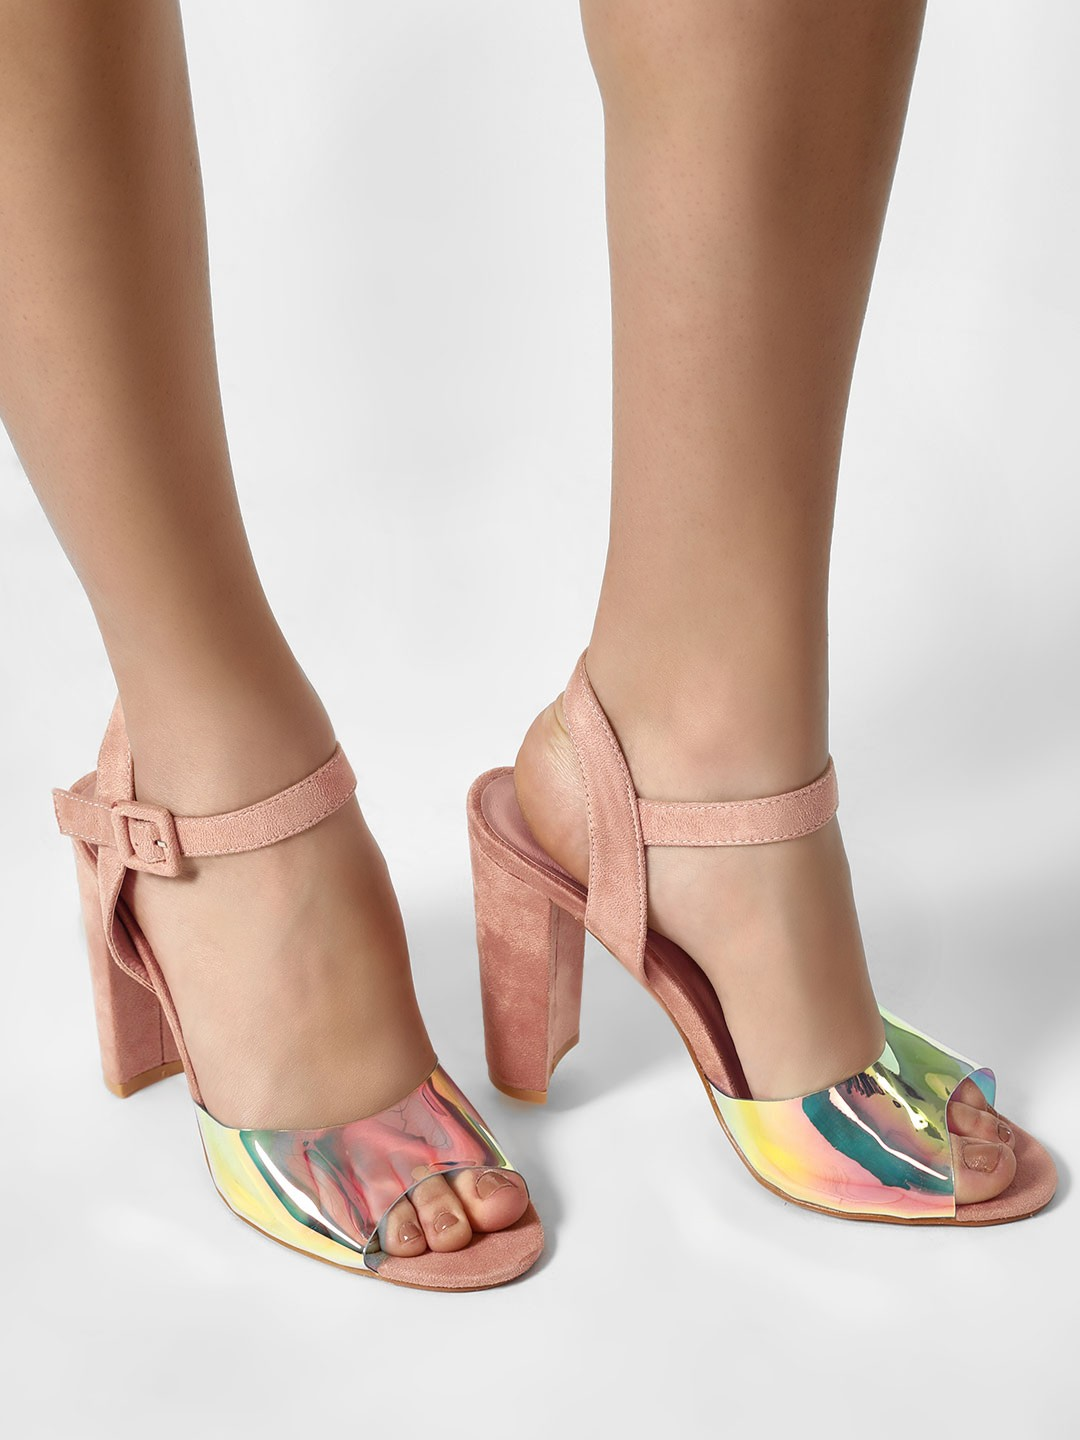 Sole Story Pink Holographic Ankle Strap Heeled Sandals 1